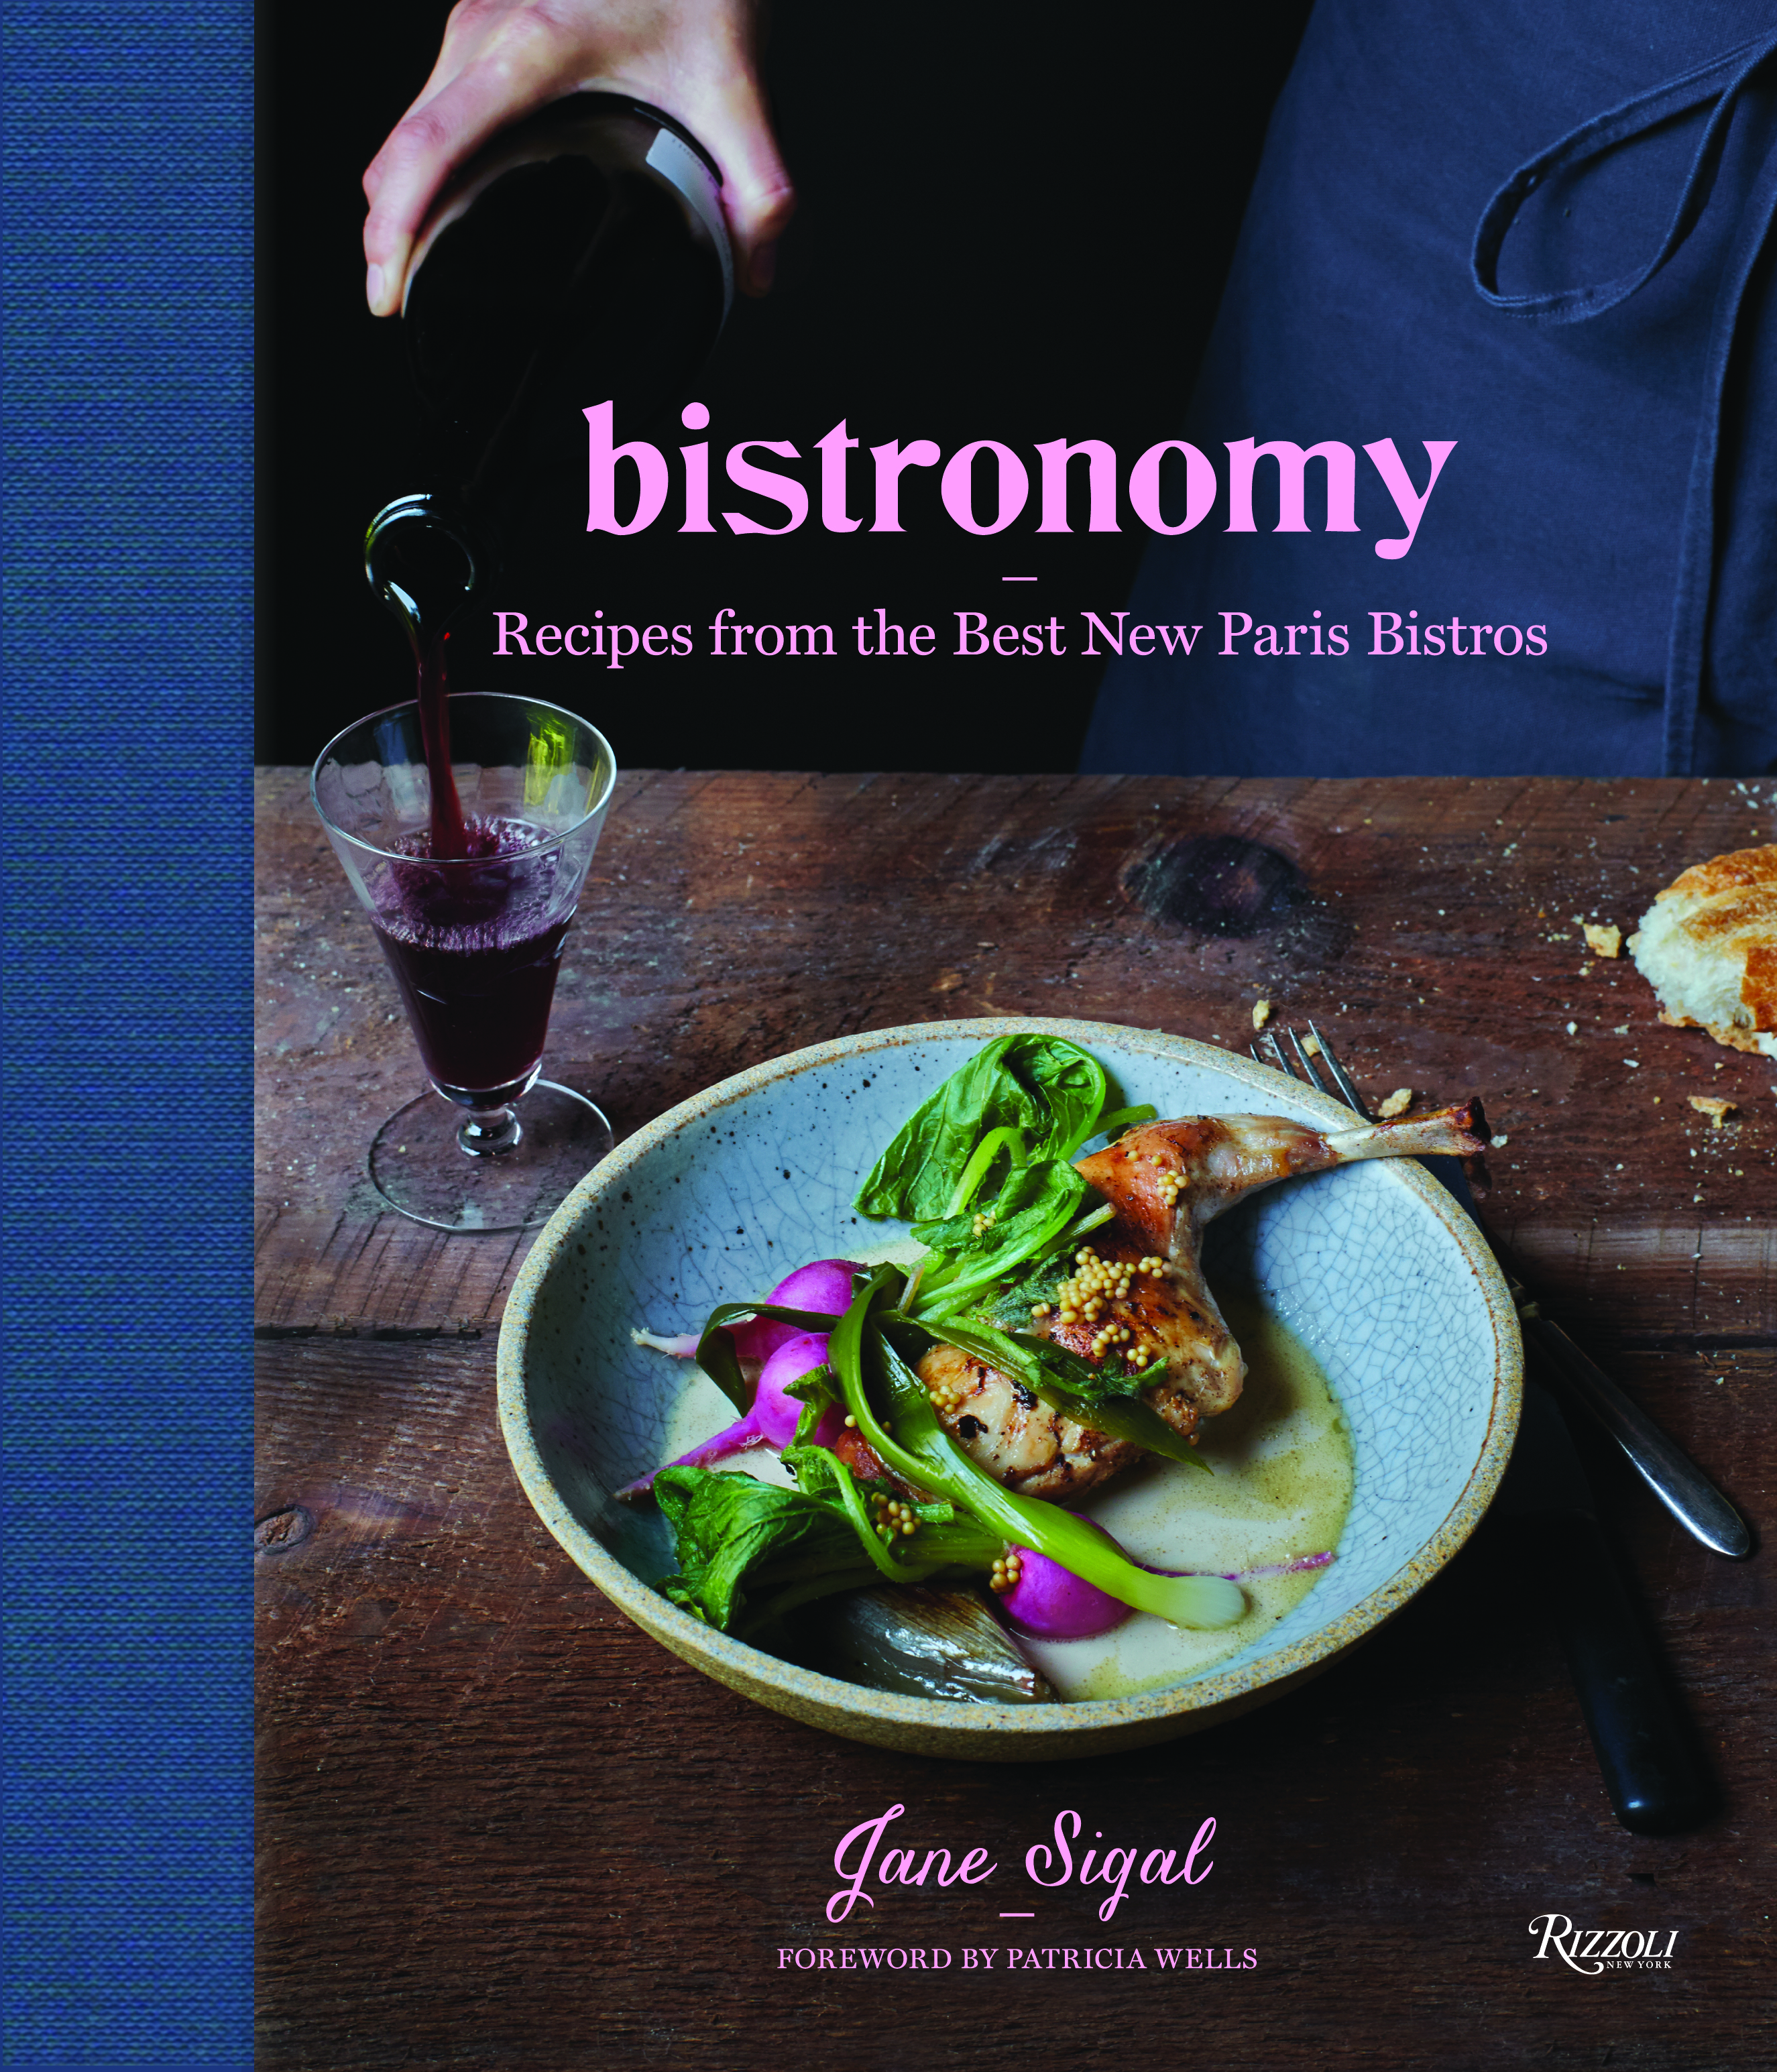 Tap Into New Takes on French Cuisine With These Cookbooks